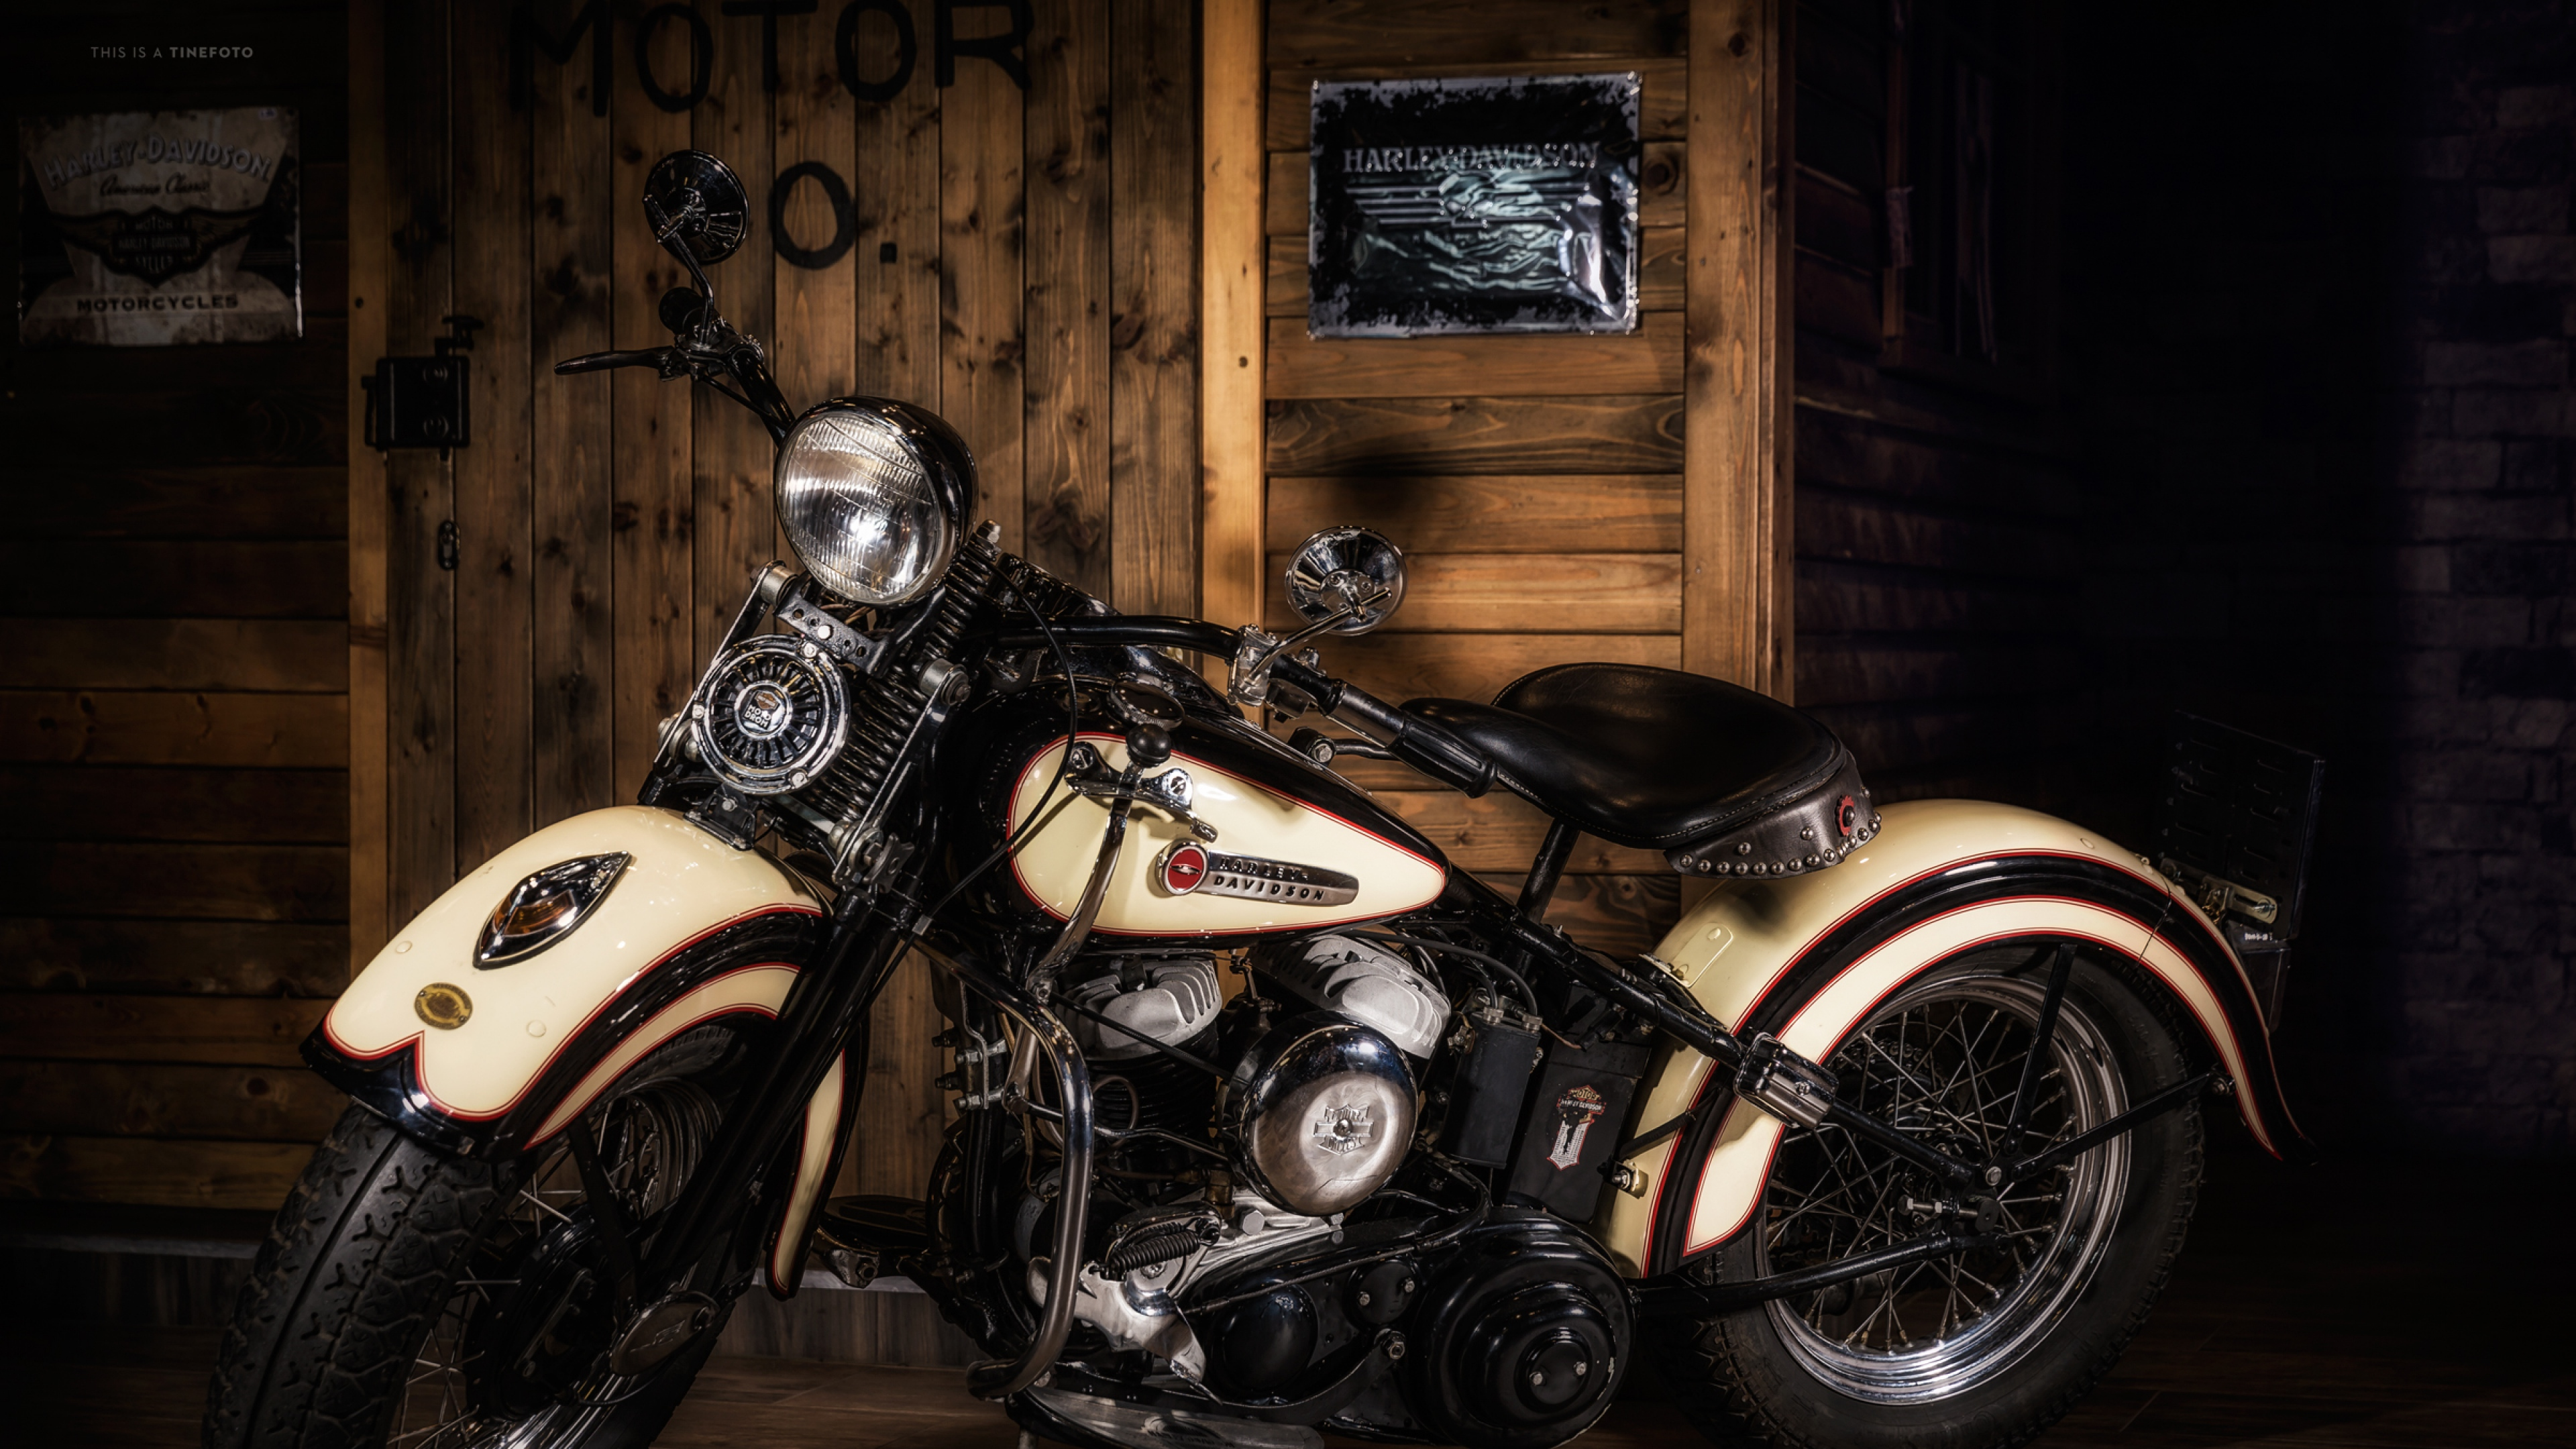 Harley Davidson, HD Bikes, 4k Wallpapers, Images, Backgrounds ...